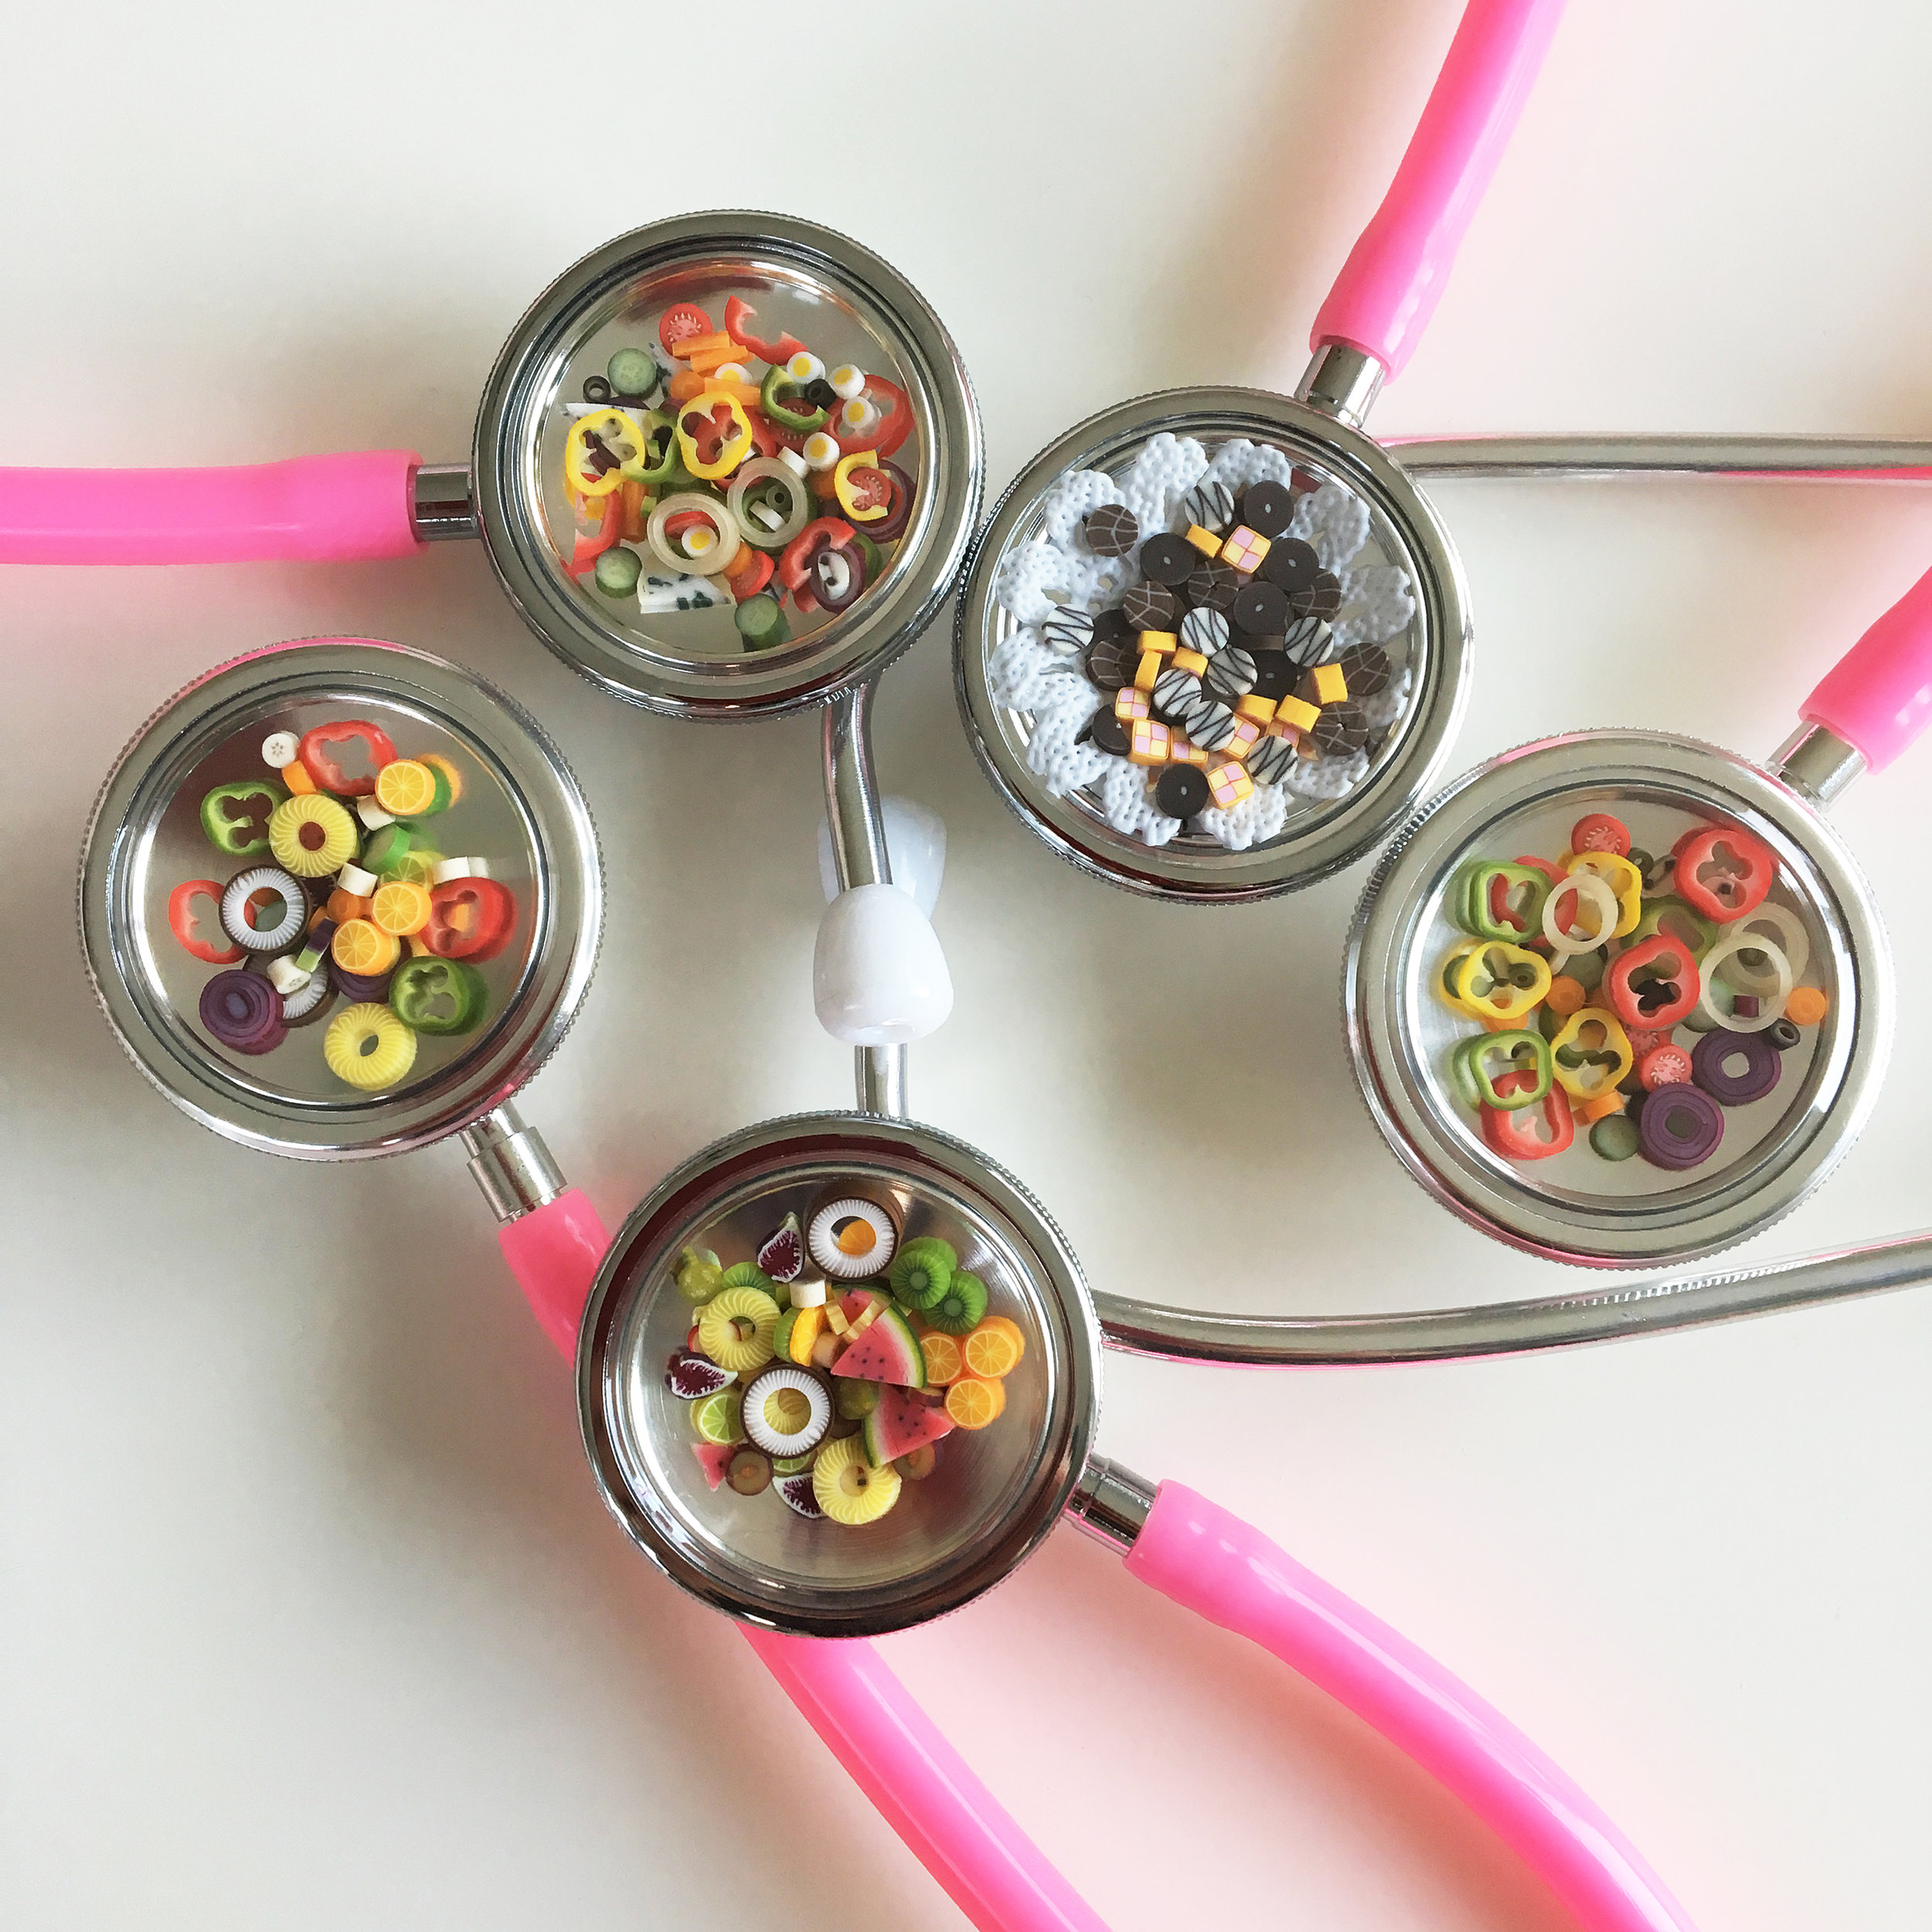 Healthy eating stethoscopes…